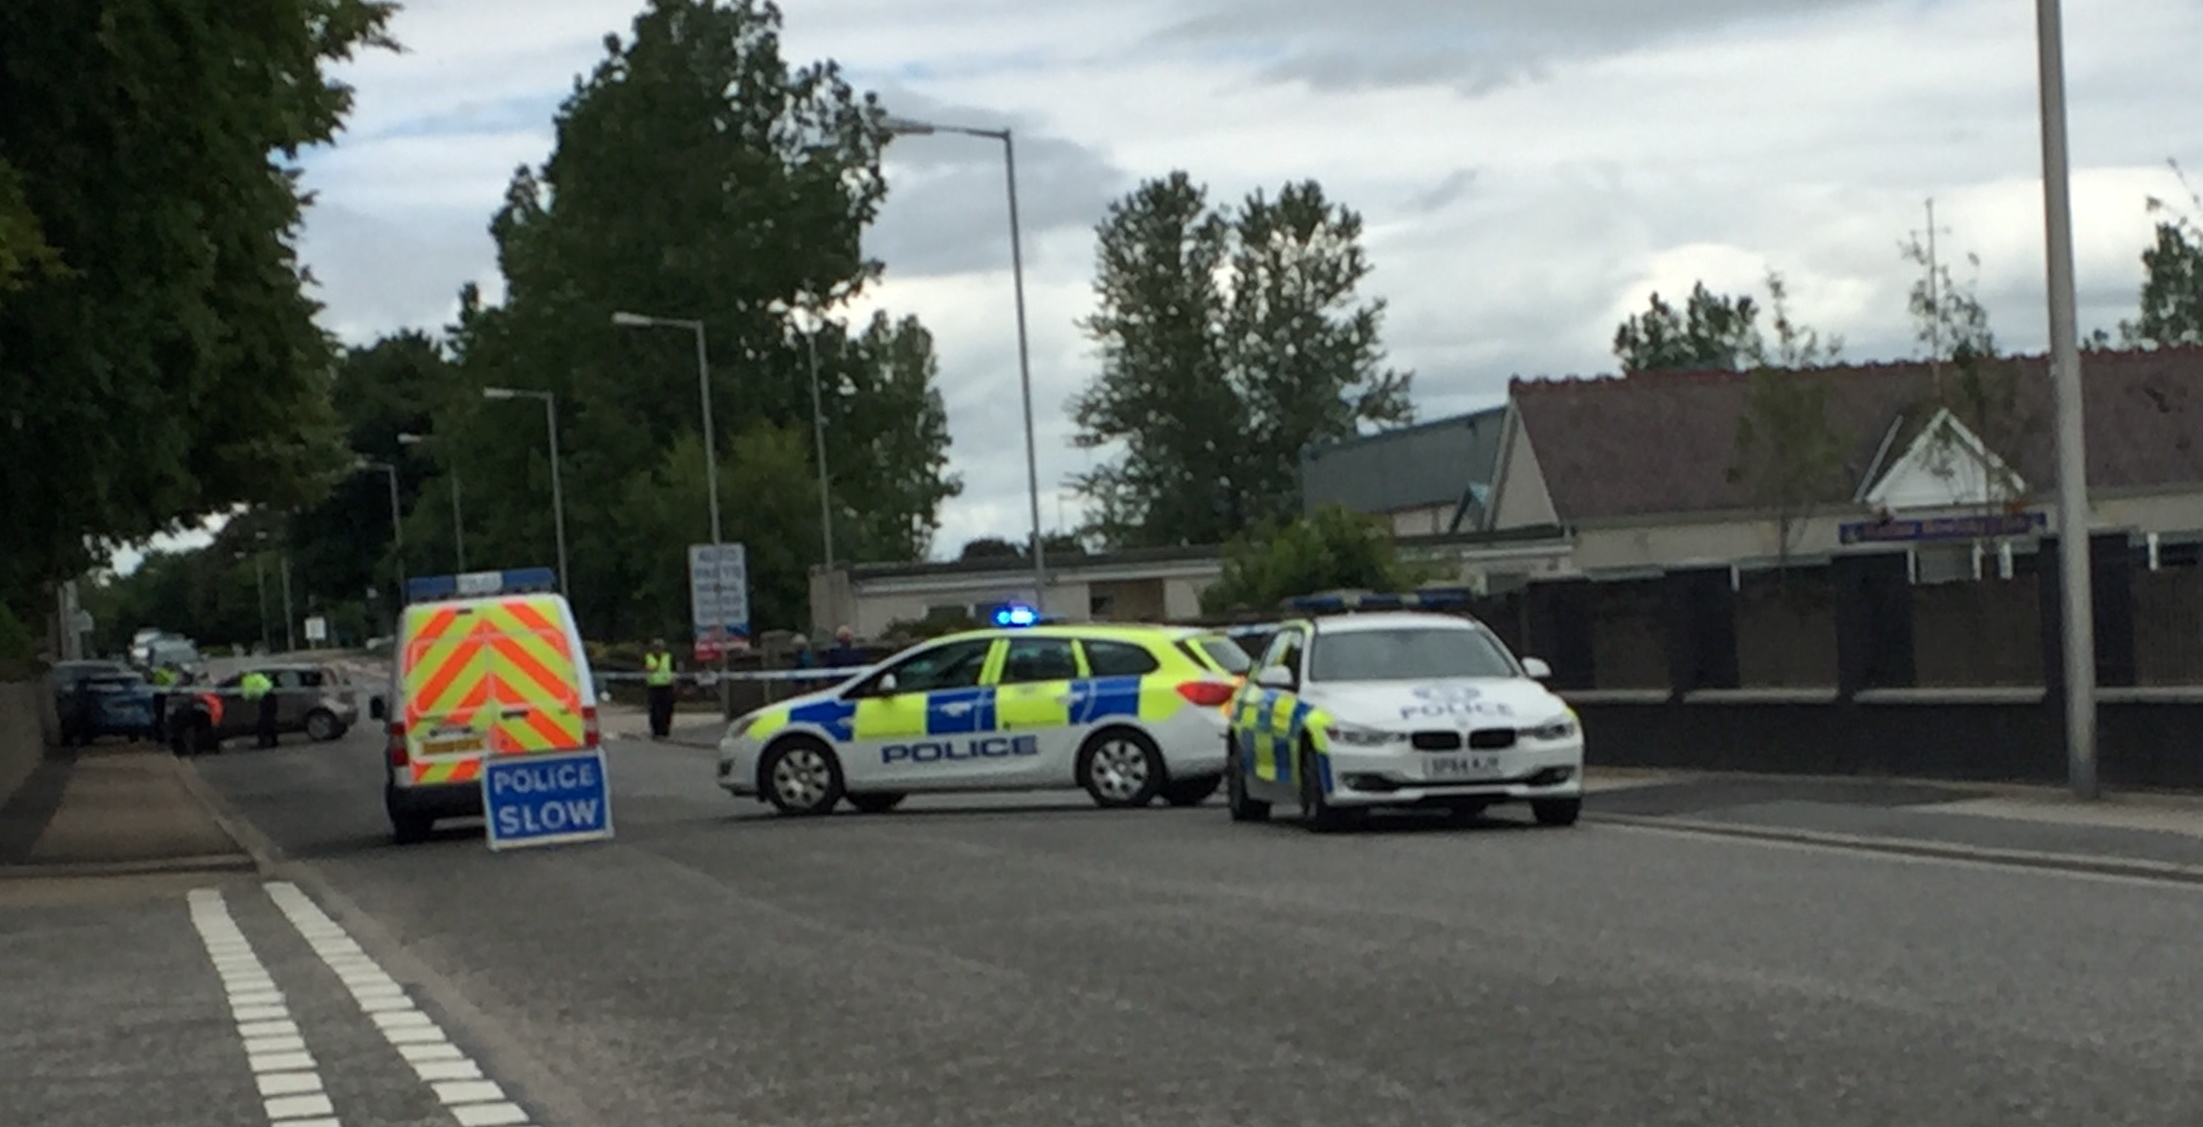 Two cars were involved in the crash on Harlaw Road in Inverurie.